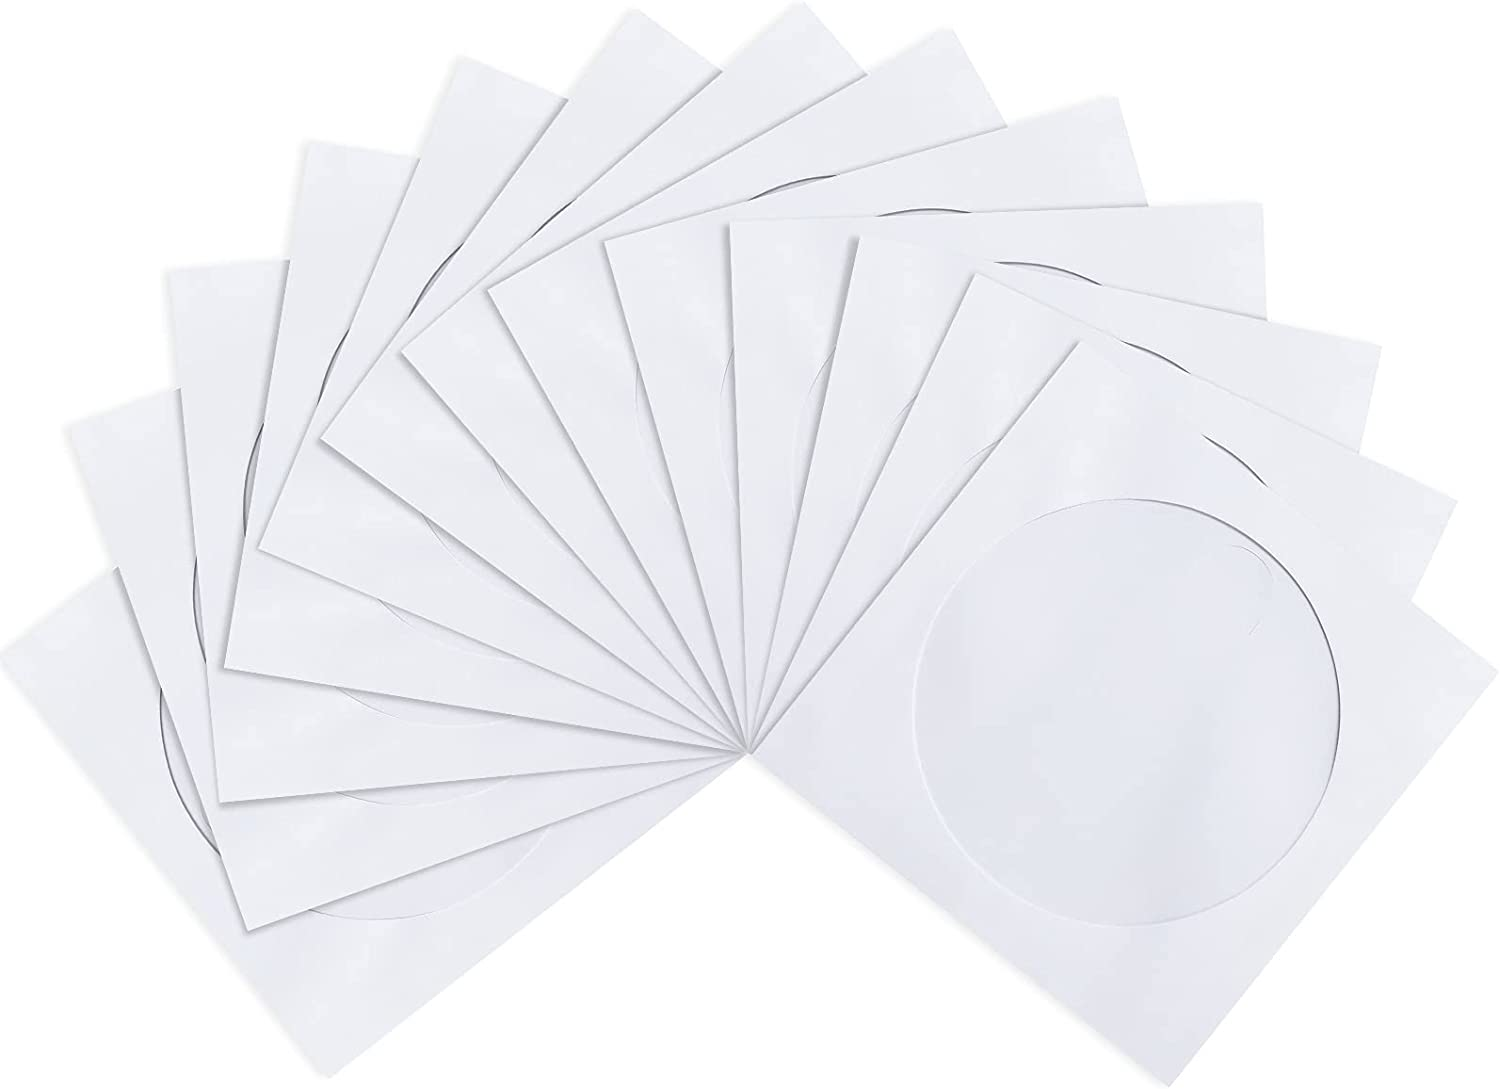 CD DVD Sleeves, Pacific Mailer DVD CD Media Paper Envelop Sleeves Holder with Clear Window Close Flap [120G Extra Thickness, White, Pack of 100]